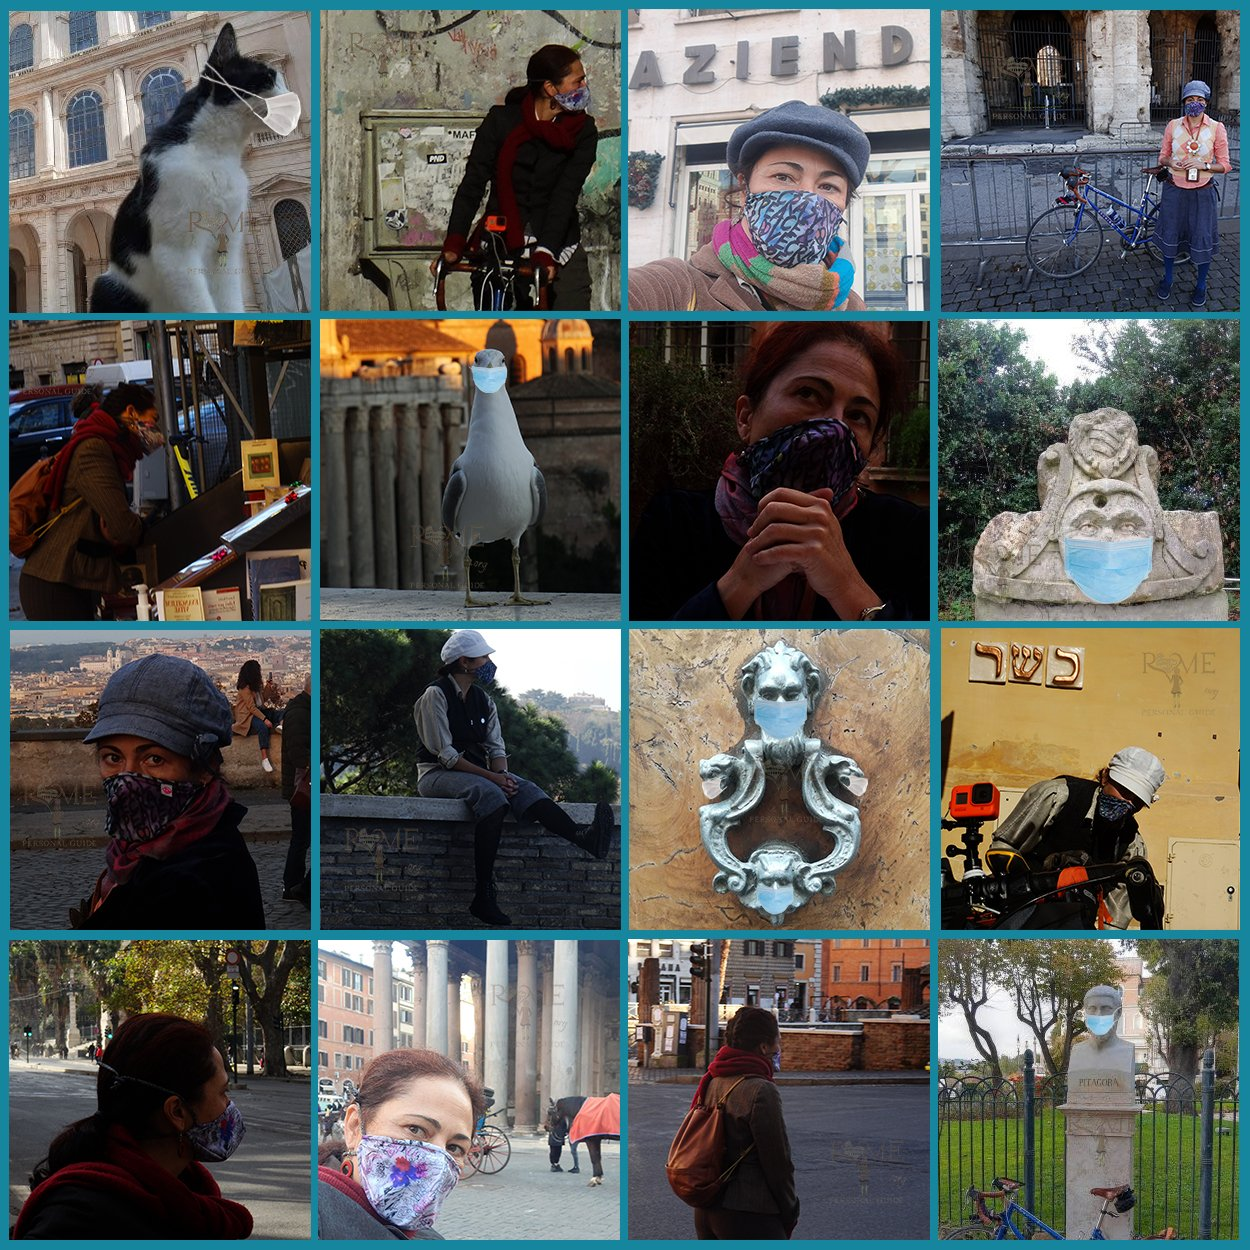 Puzzle of me, statues and animals with mask